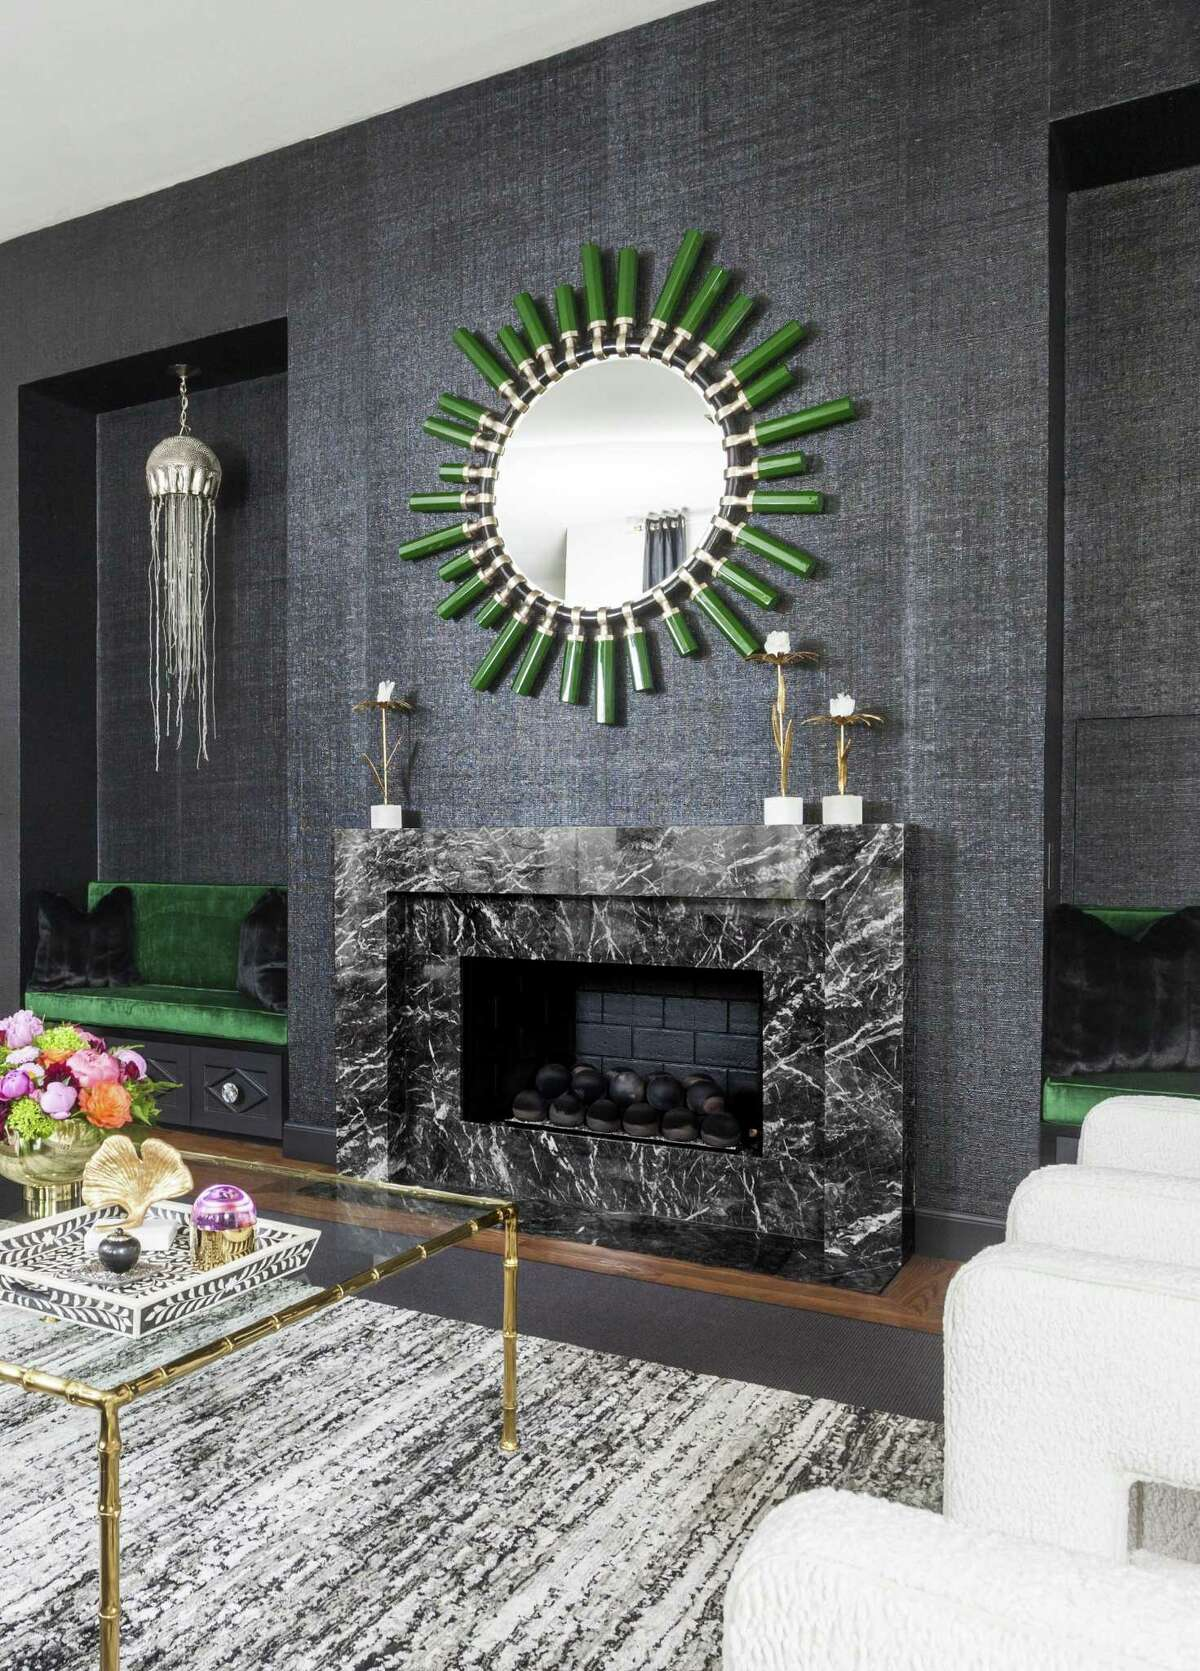 Grigio Carnico marble from Aria Stone Gallery was used around the fireplace in this home.